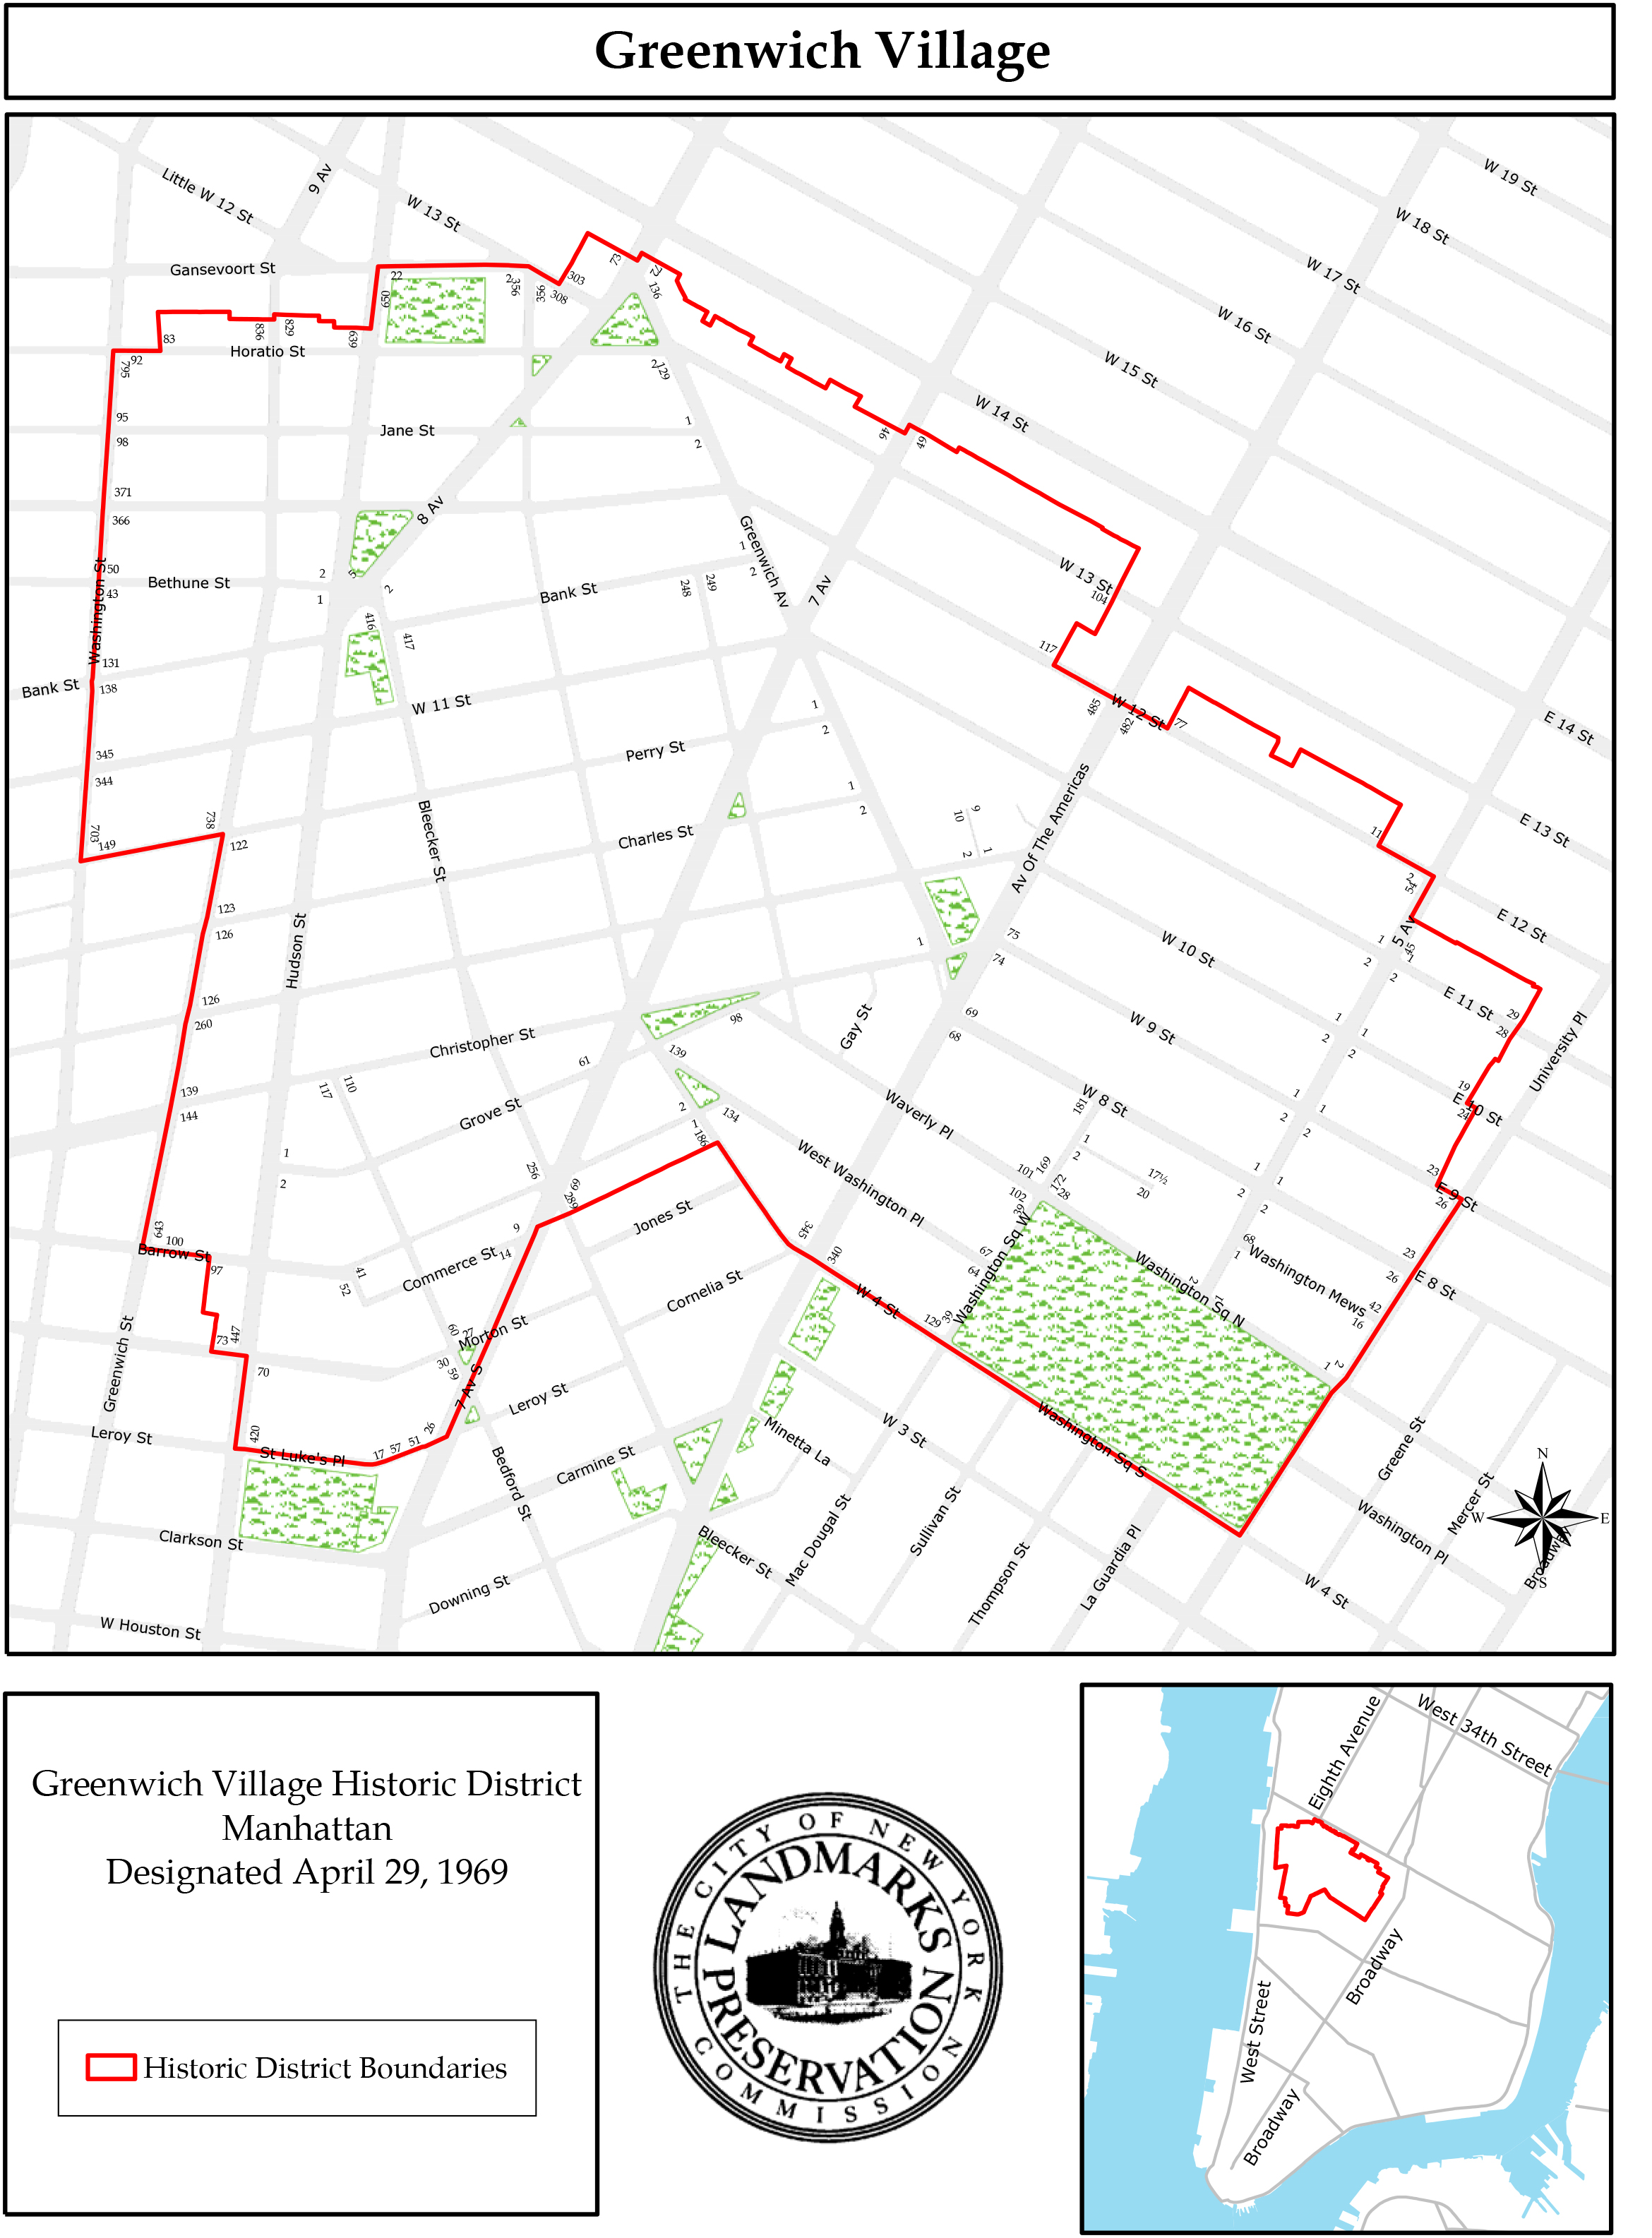 Official map of the Greenwich Village Historic District.